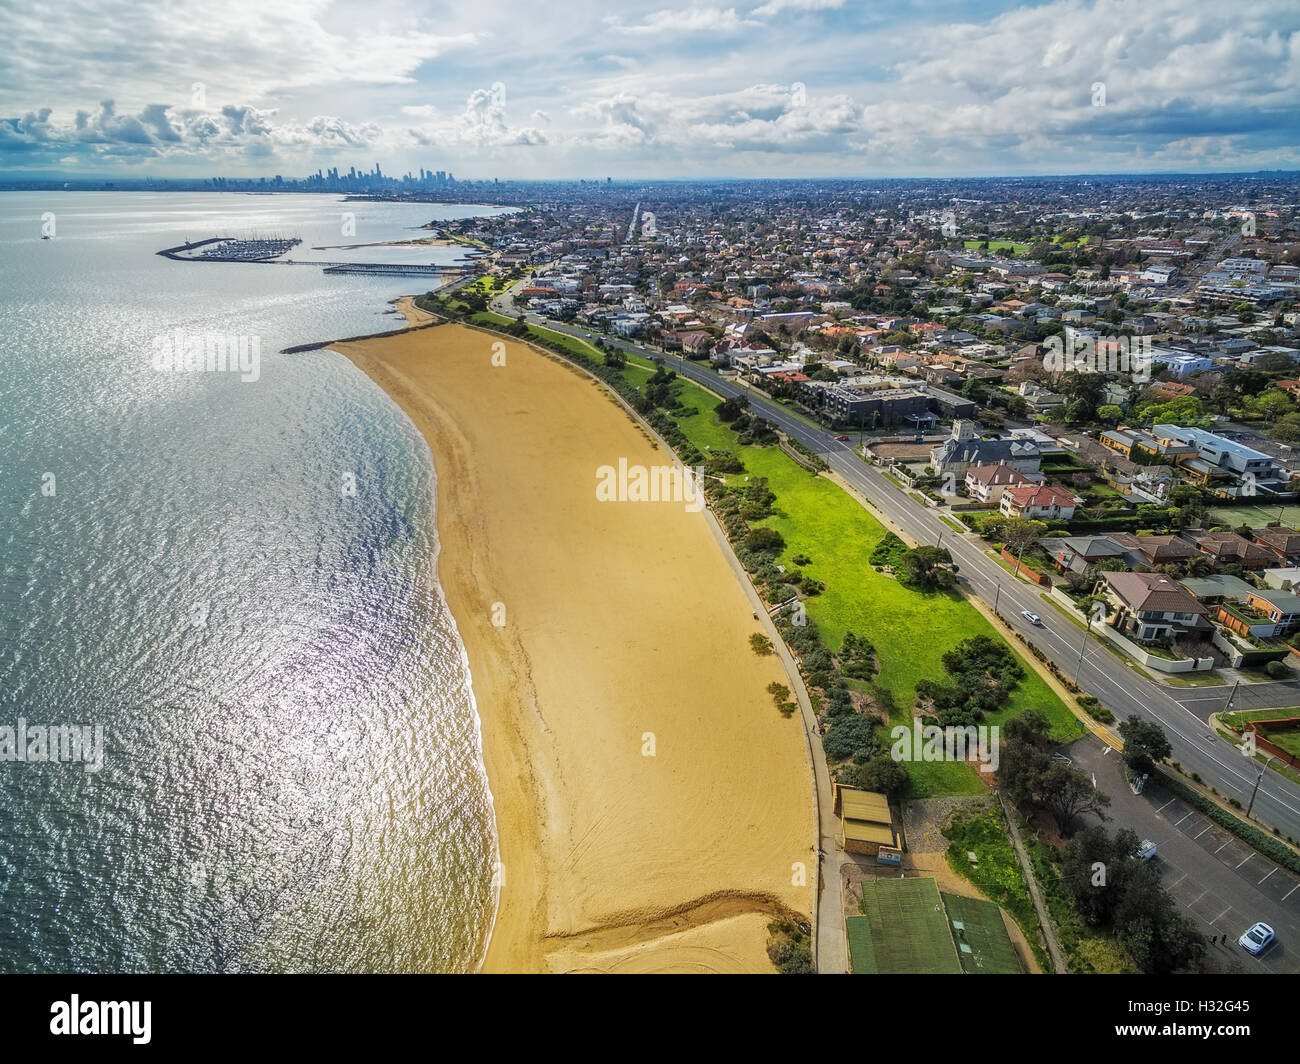 Aerial view of Brighton Beach coastline with Melbourne CBD skyscrapers in the distance - Stock Image